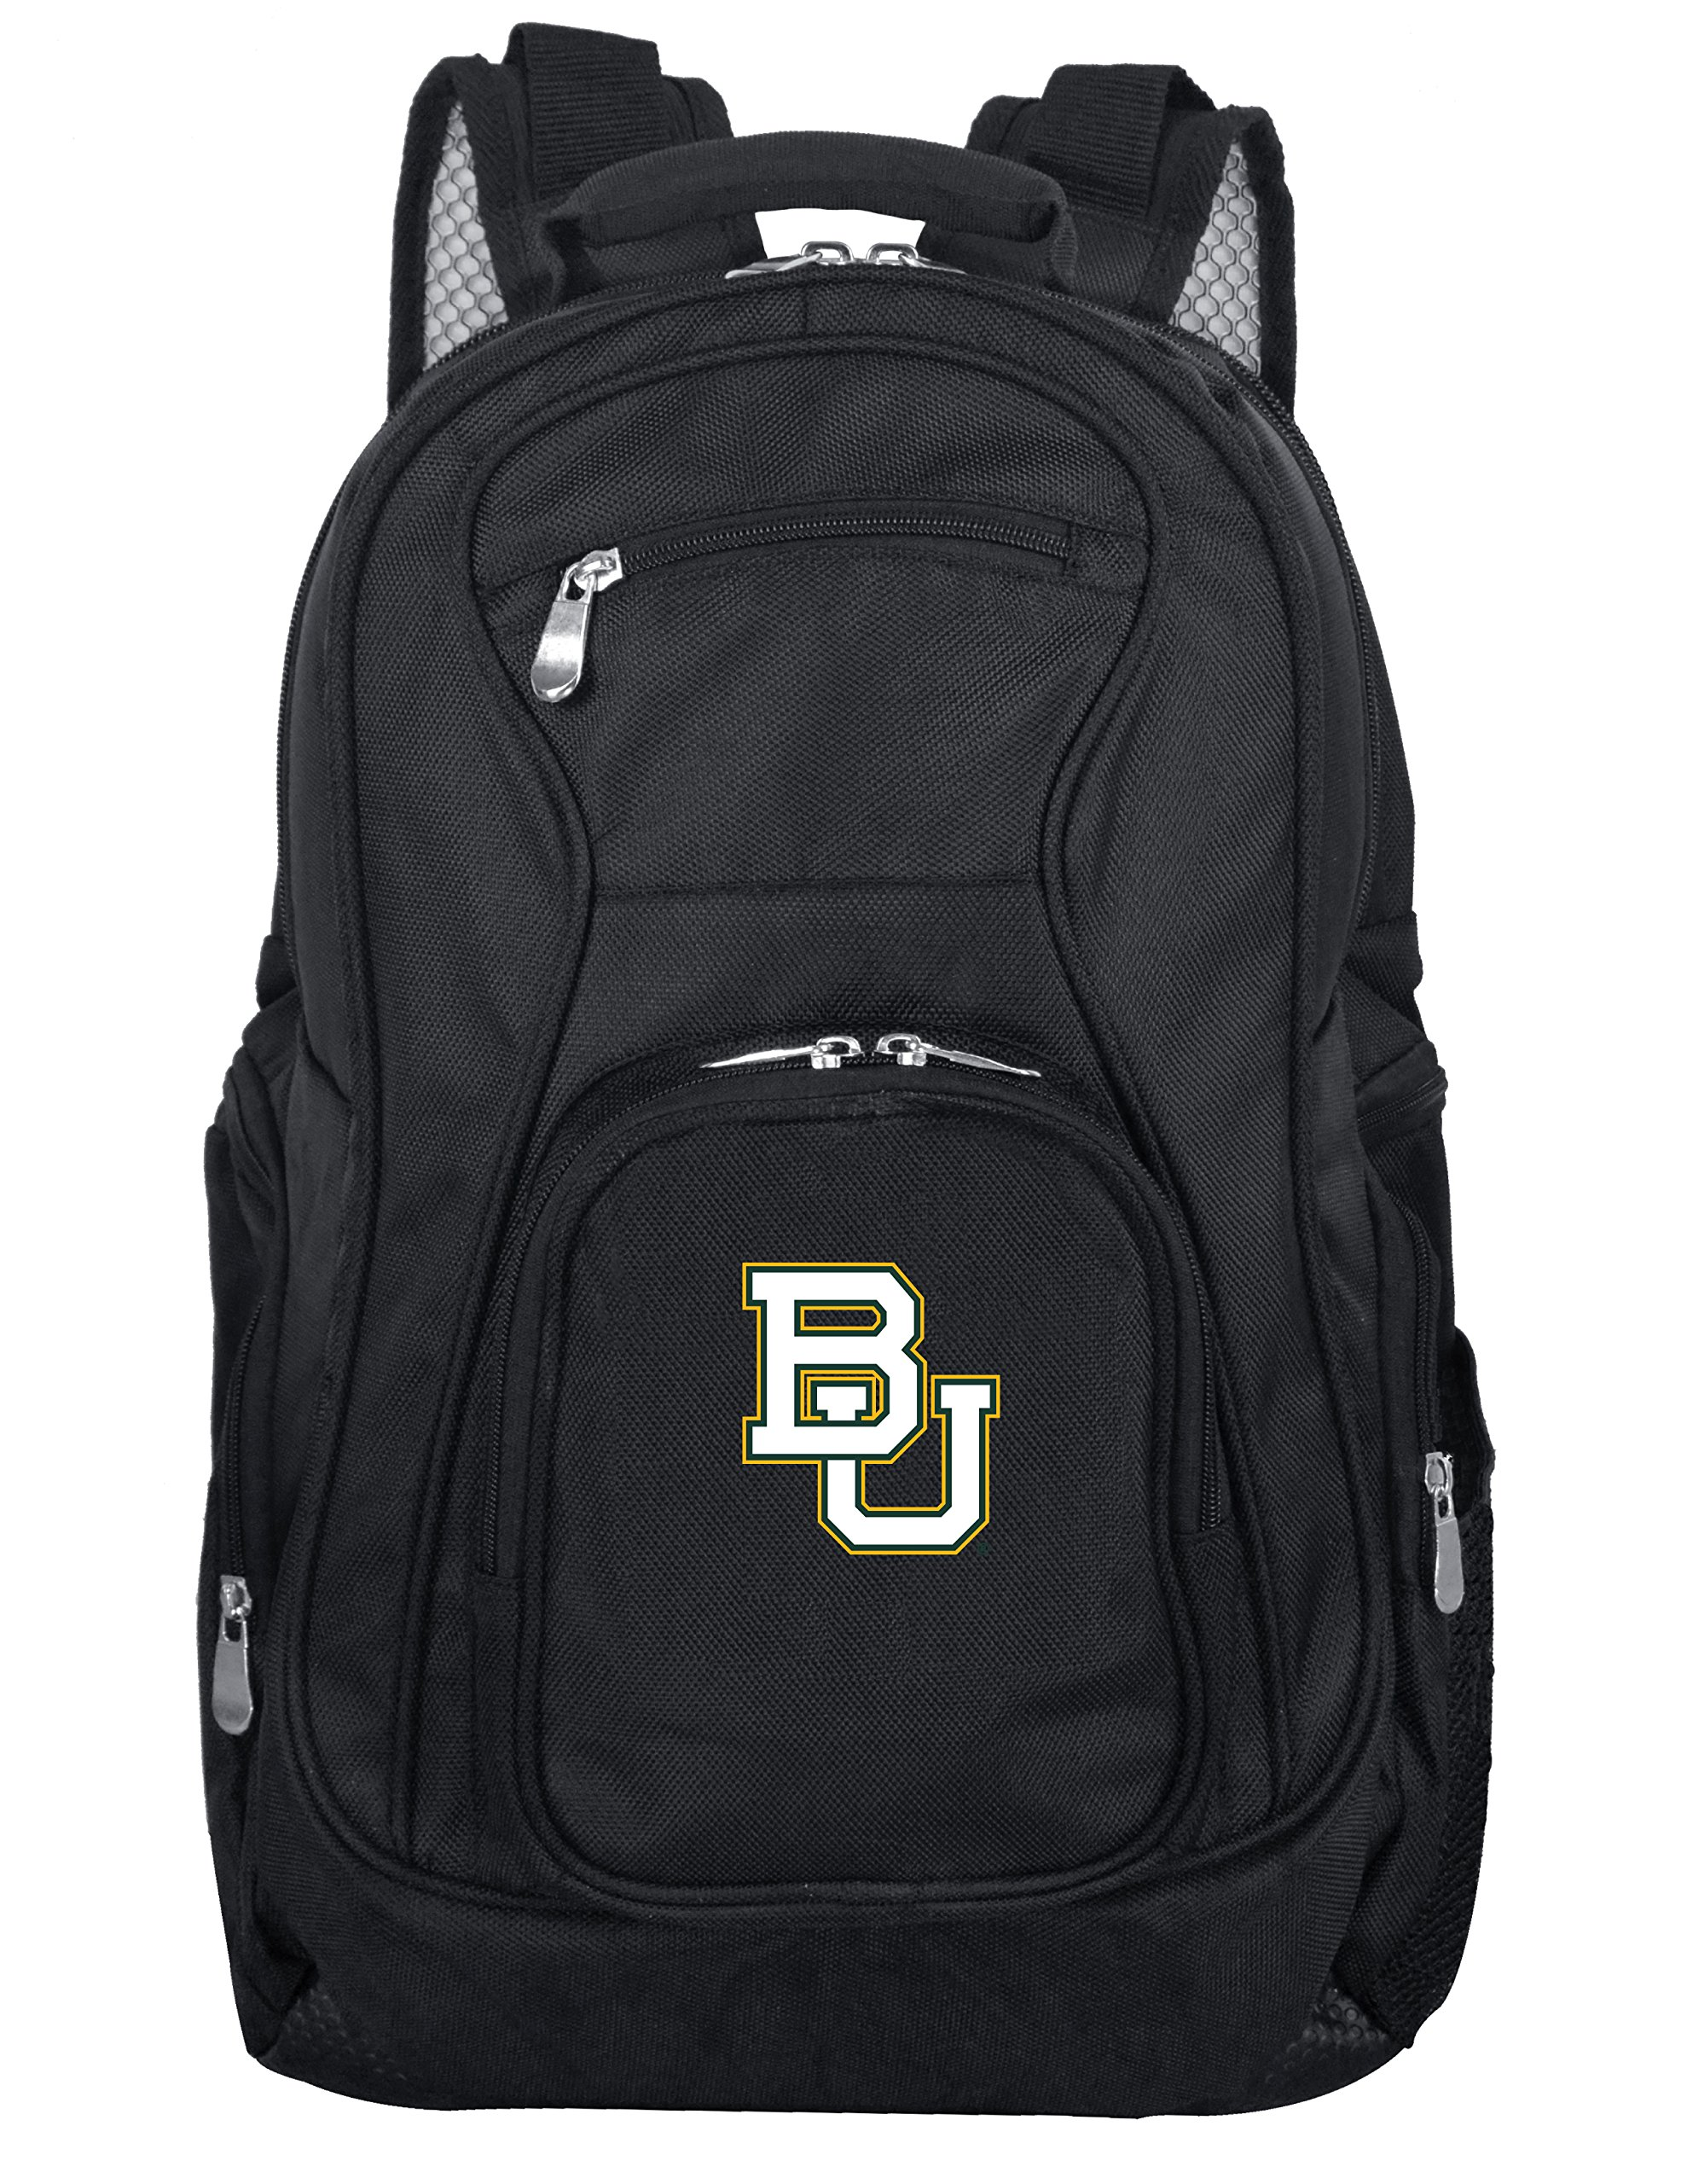 Denco NCAA Baylor Bears Voyager Laptop Backpack, 19-inches, Black